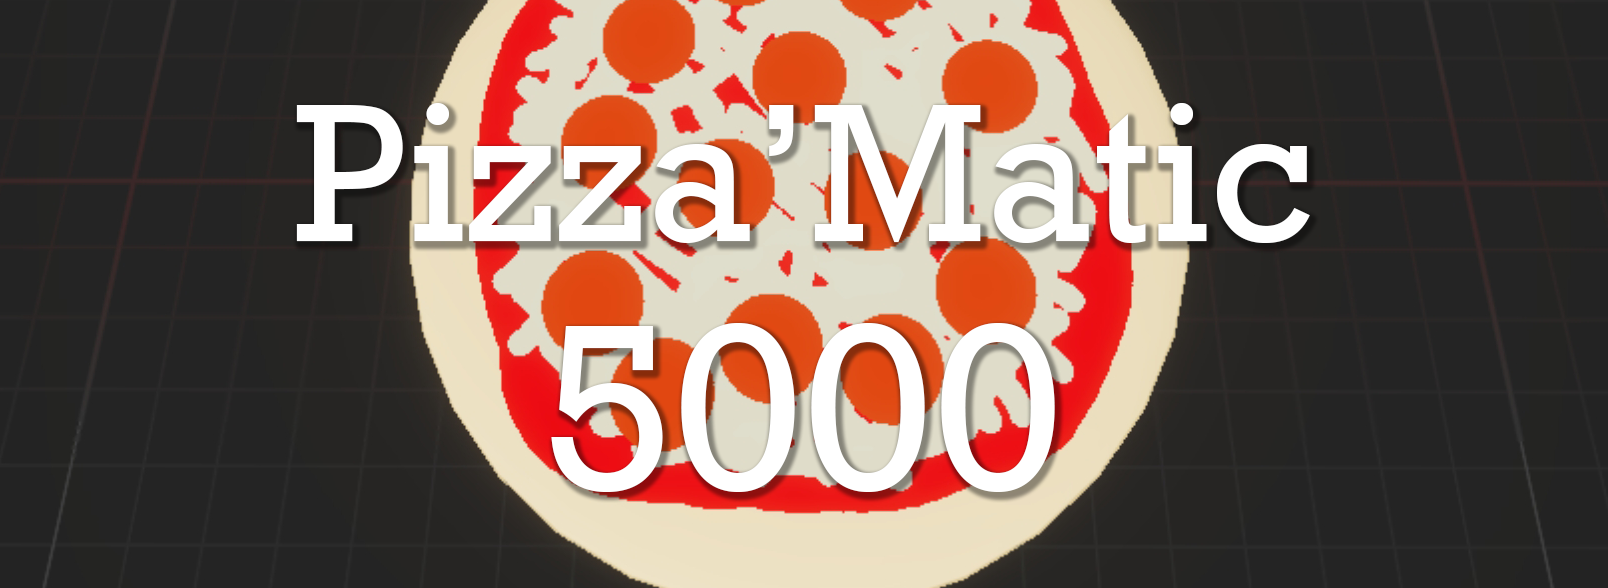 Pizza'Matic 5000